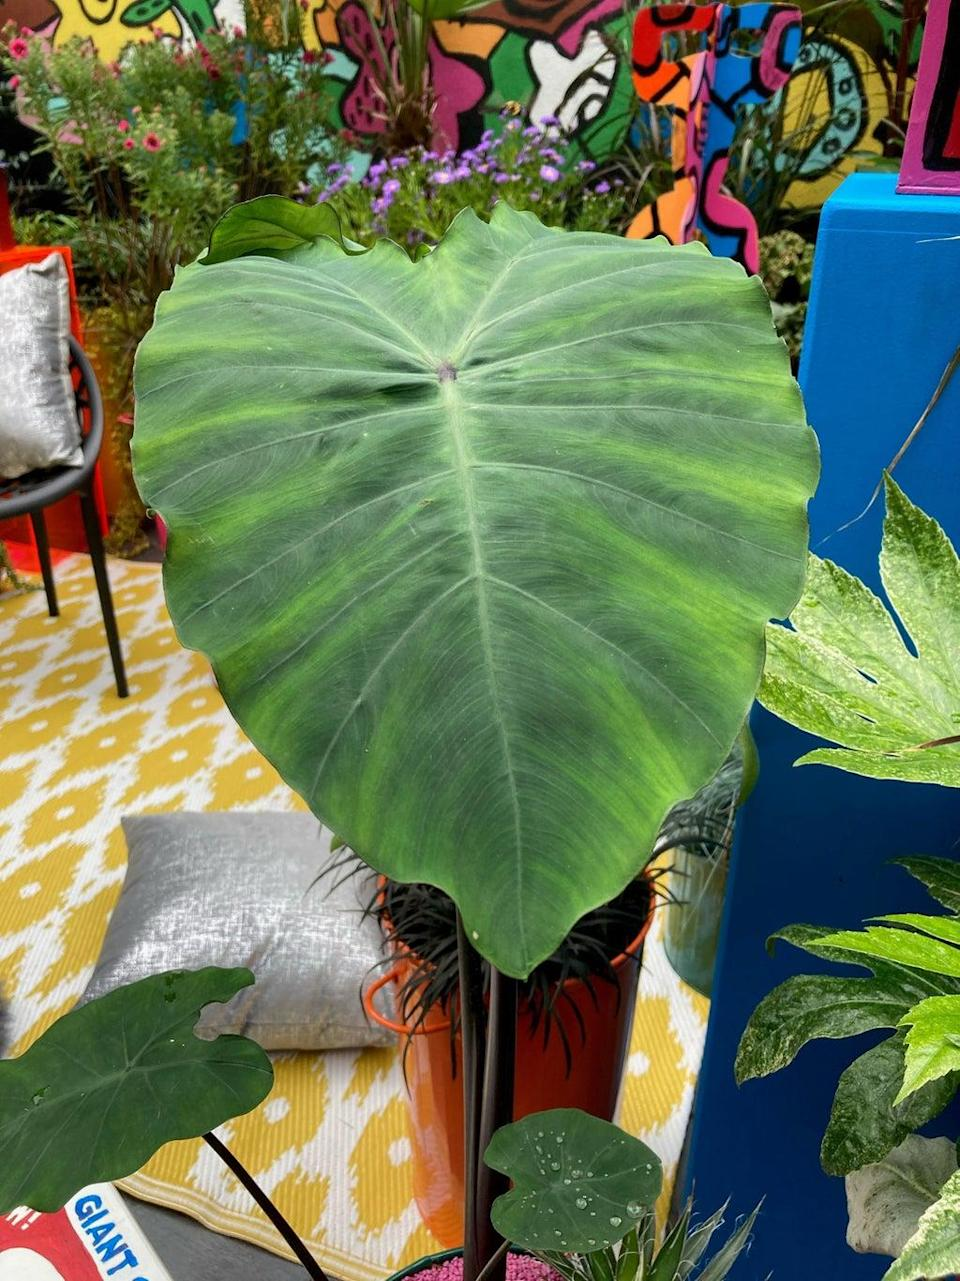 Tropical-looking alocasia in a pop art setting (Hannah Stephenson/PA)